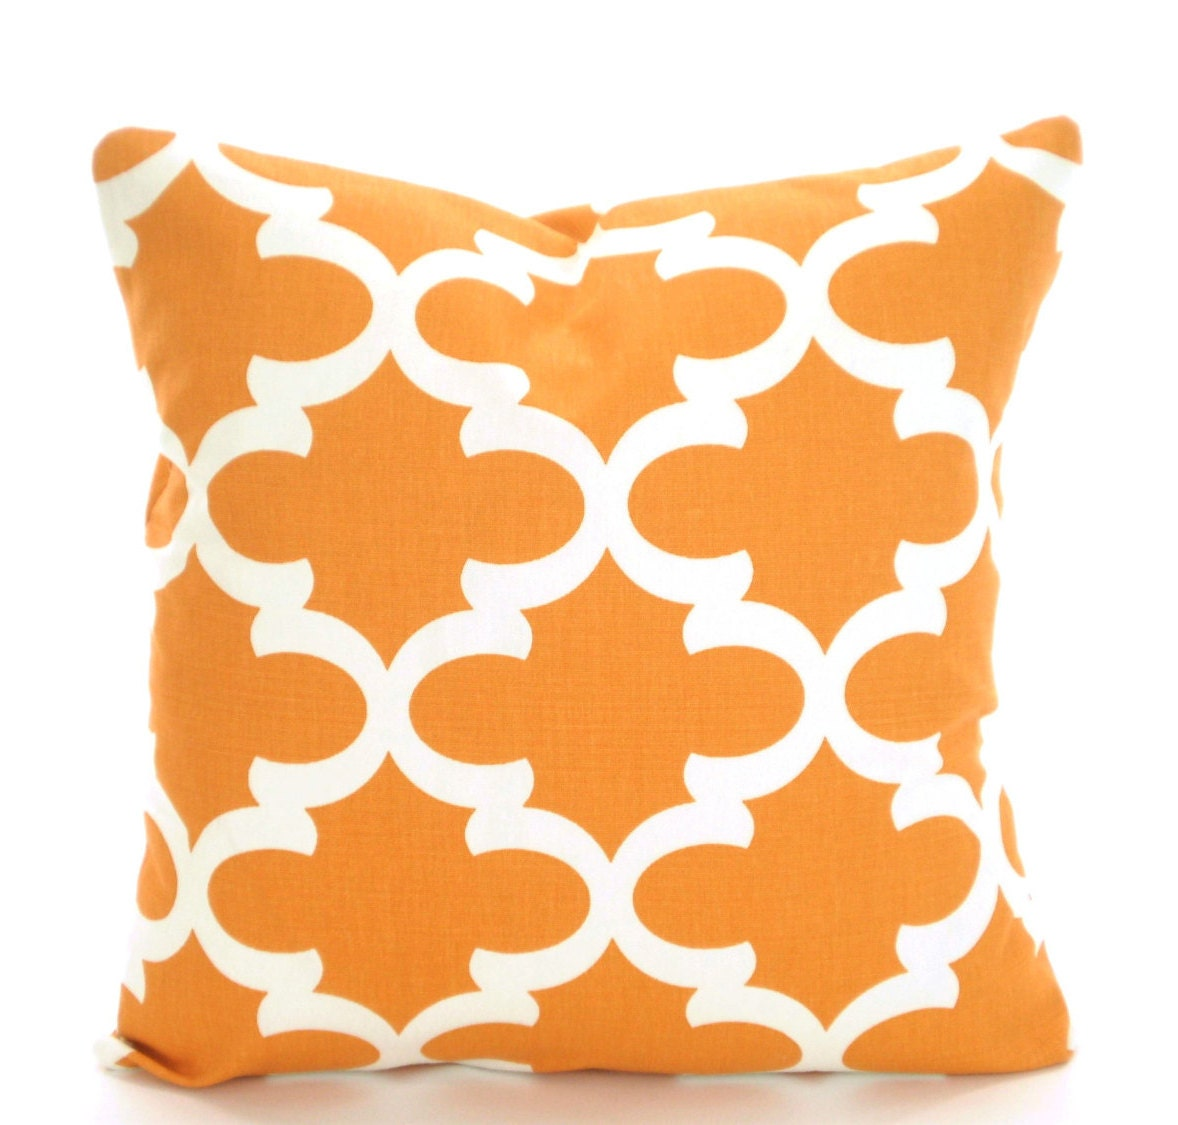 Orange Decorative Pillows Couch : Orange Pillow Covers Decorative Throw Pillows Cushions